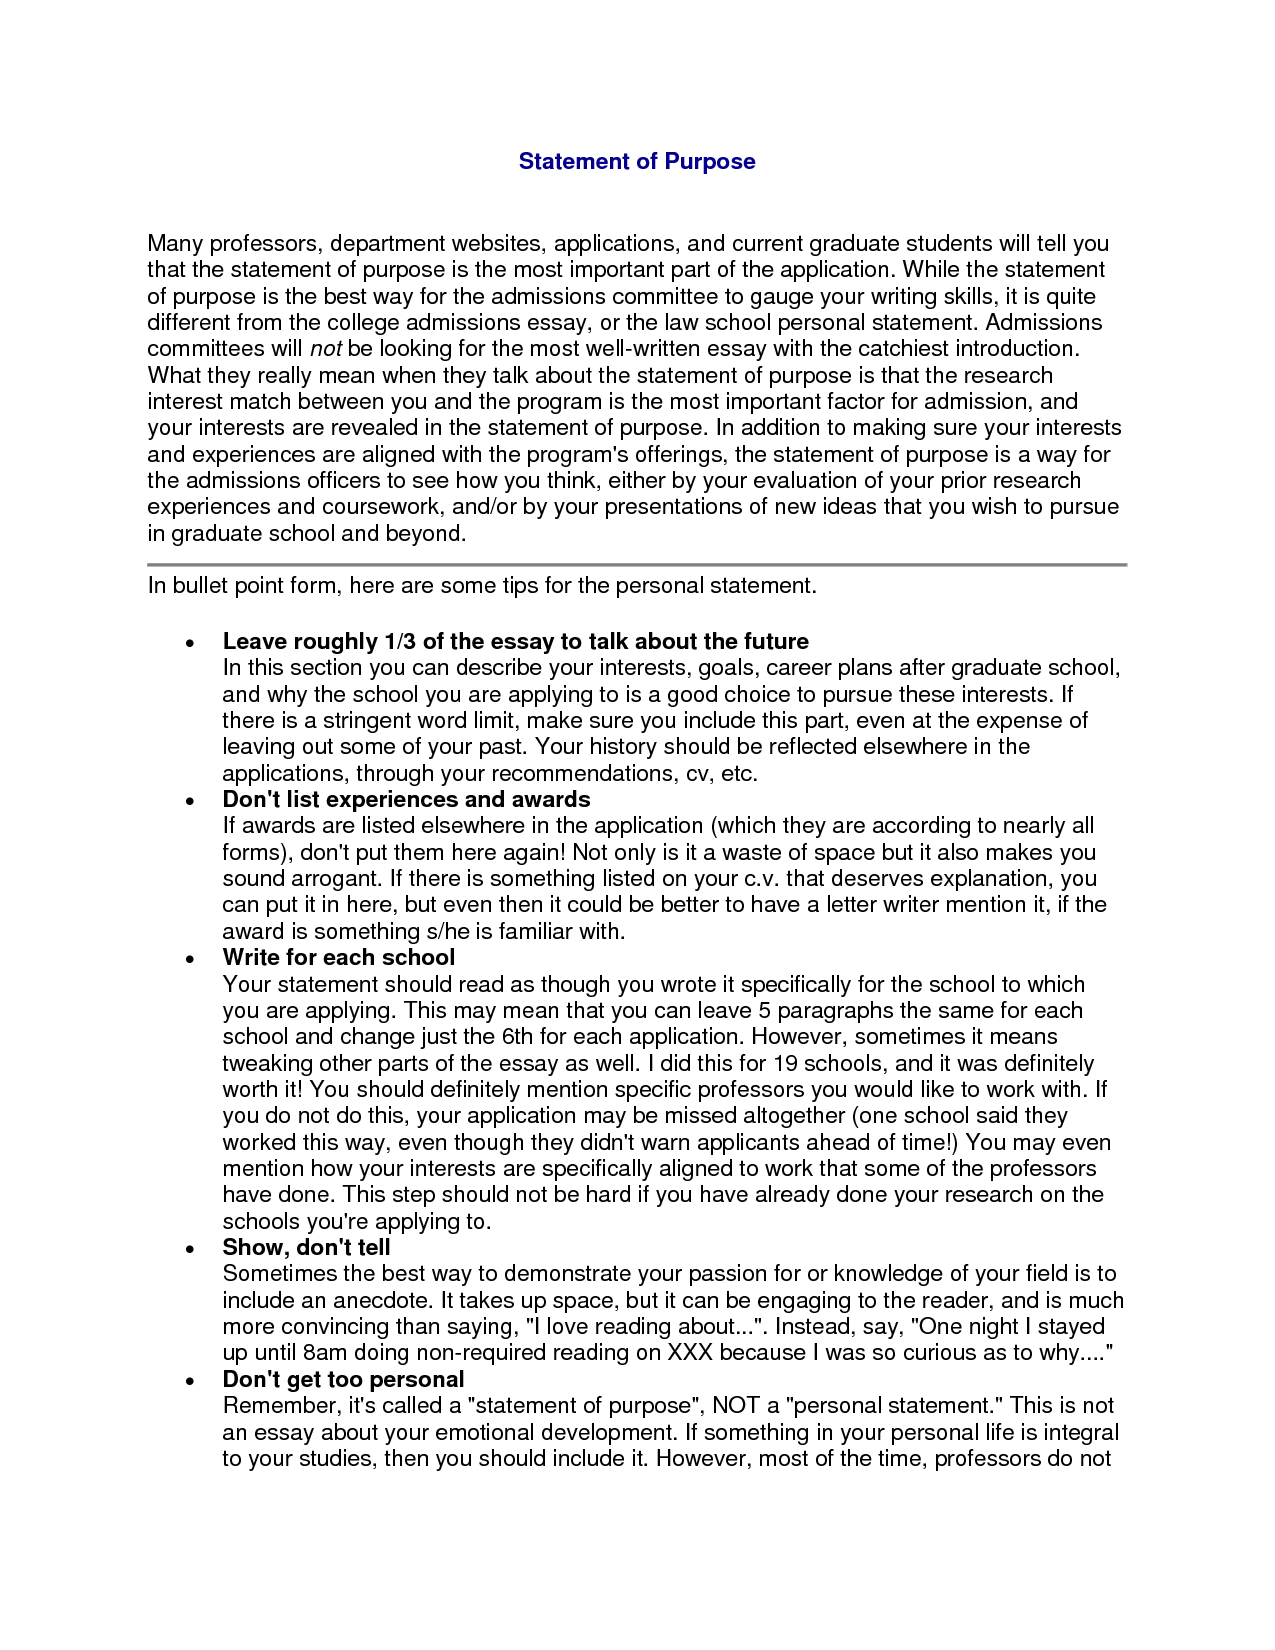 Letter Of Intent Template Graduate School - Phd Essays Personal Statement Sample for Cover Letter Purpose